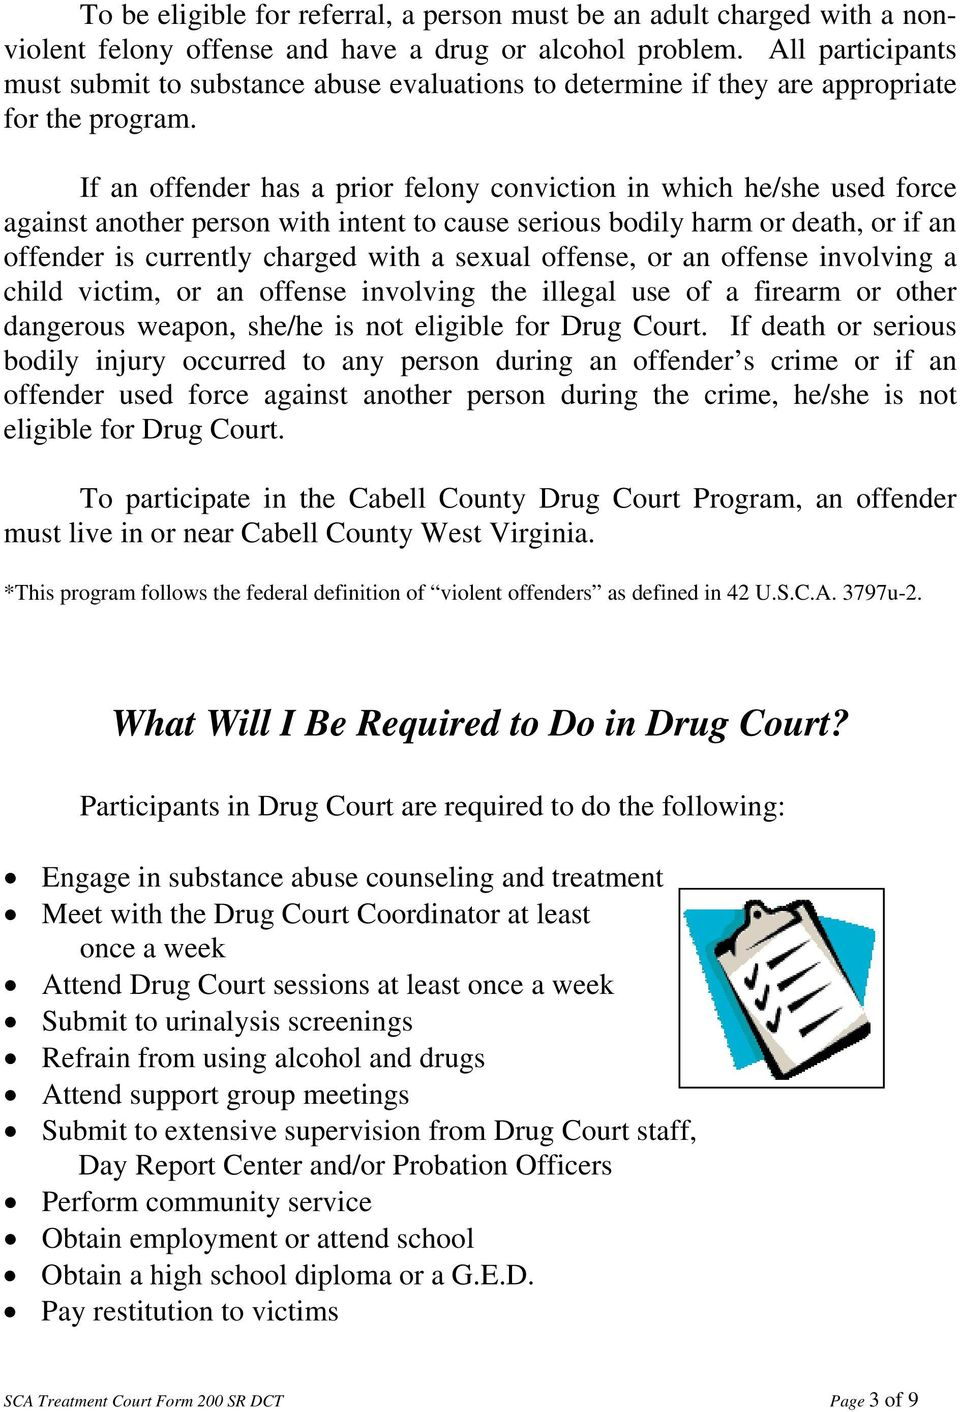 Cabell County Drug Court - PDF